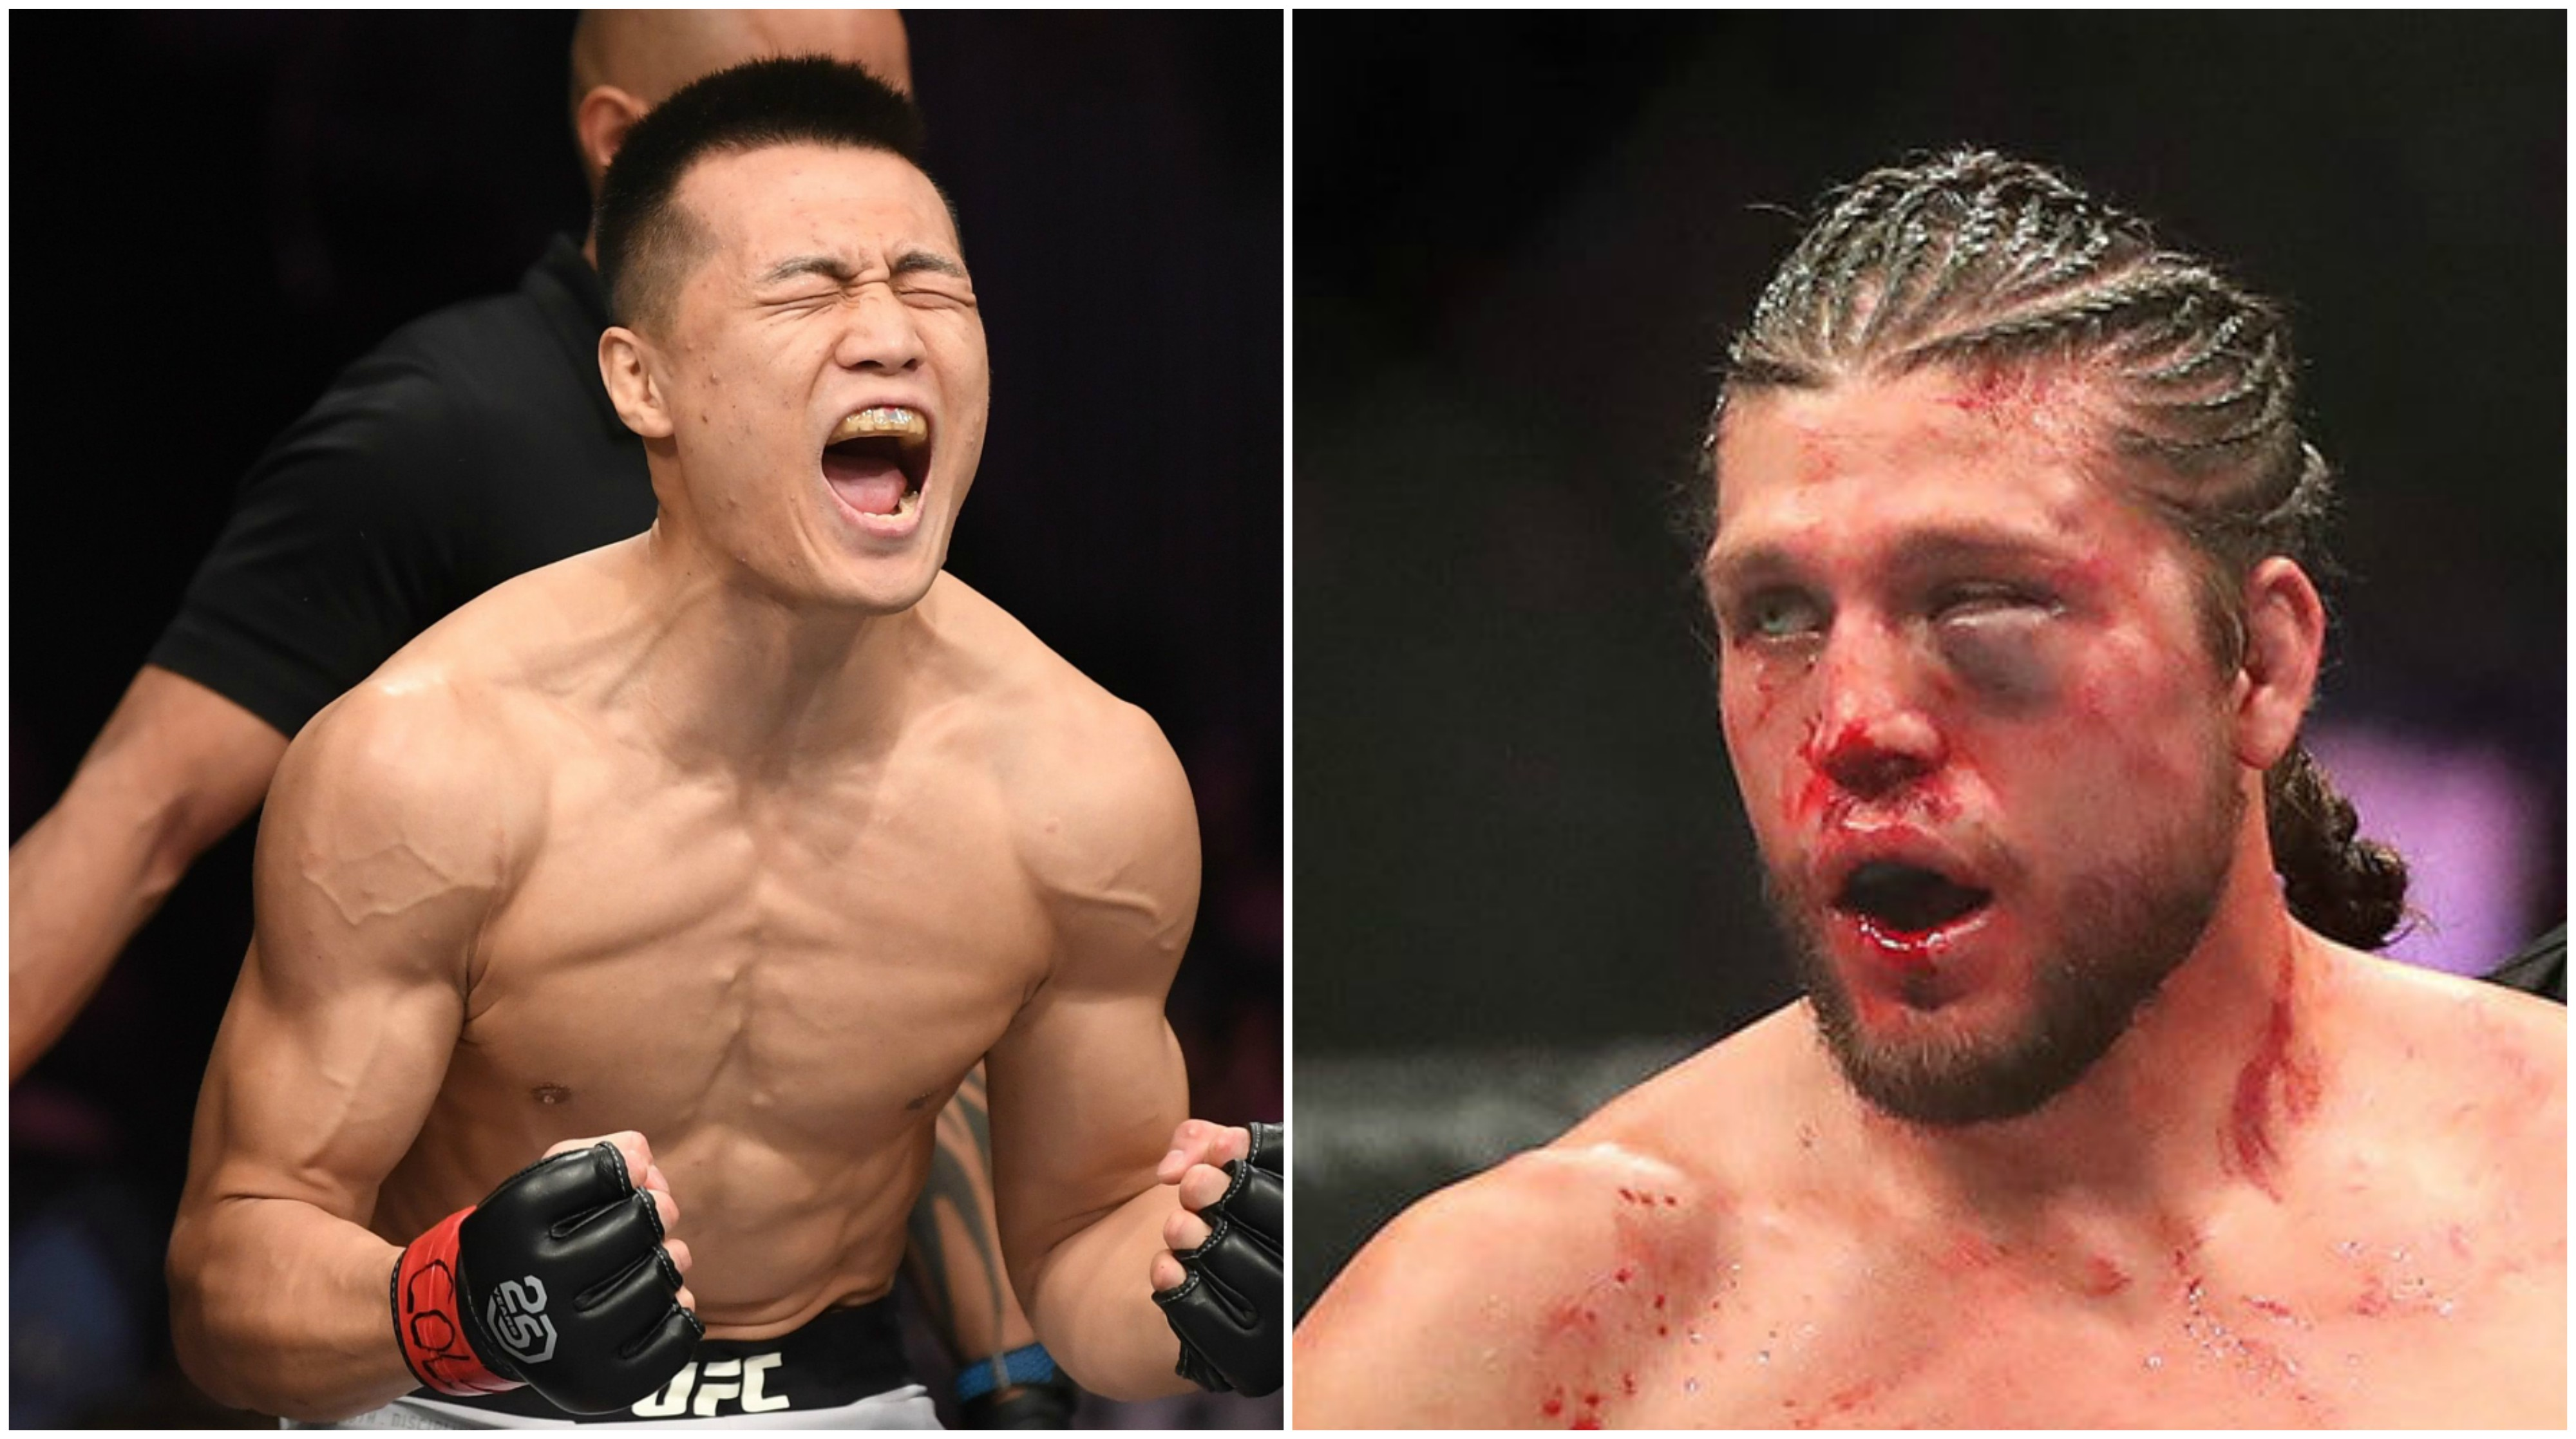 UFC News: Read Korean Zombie's bone-chilling message to Brian Ortega after he slapped his translator at UFC 248 - Korean